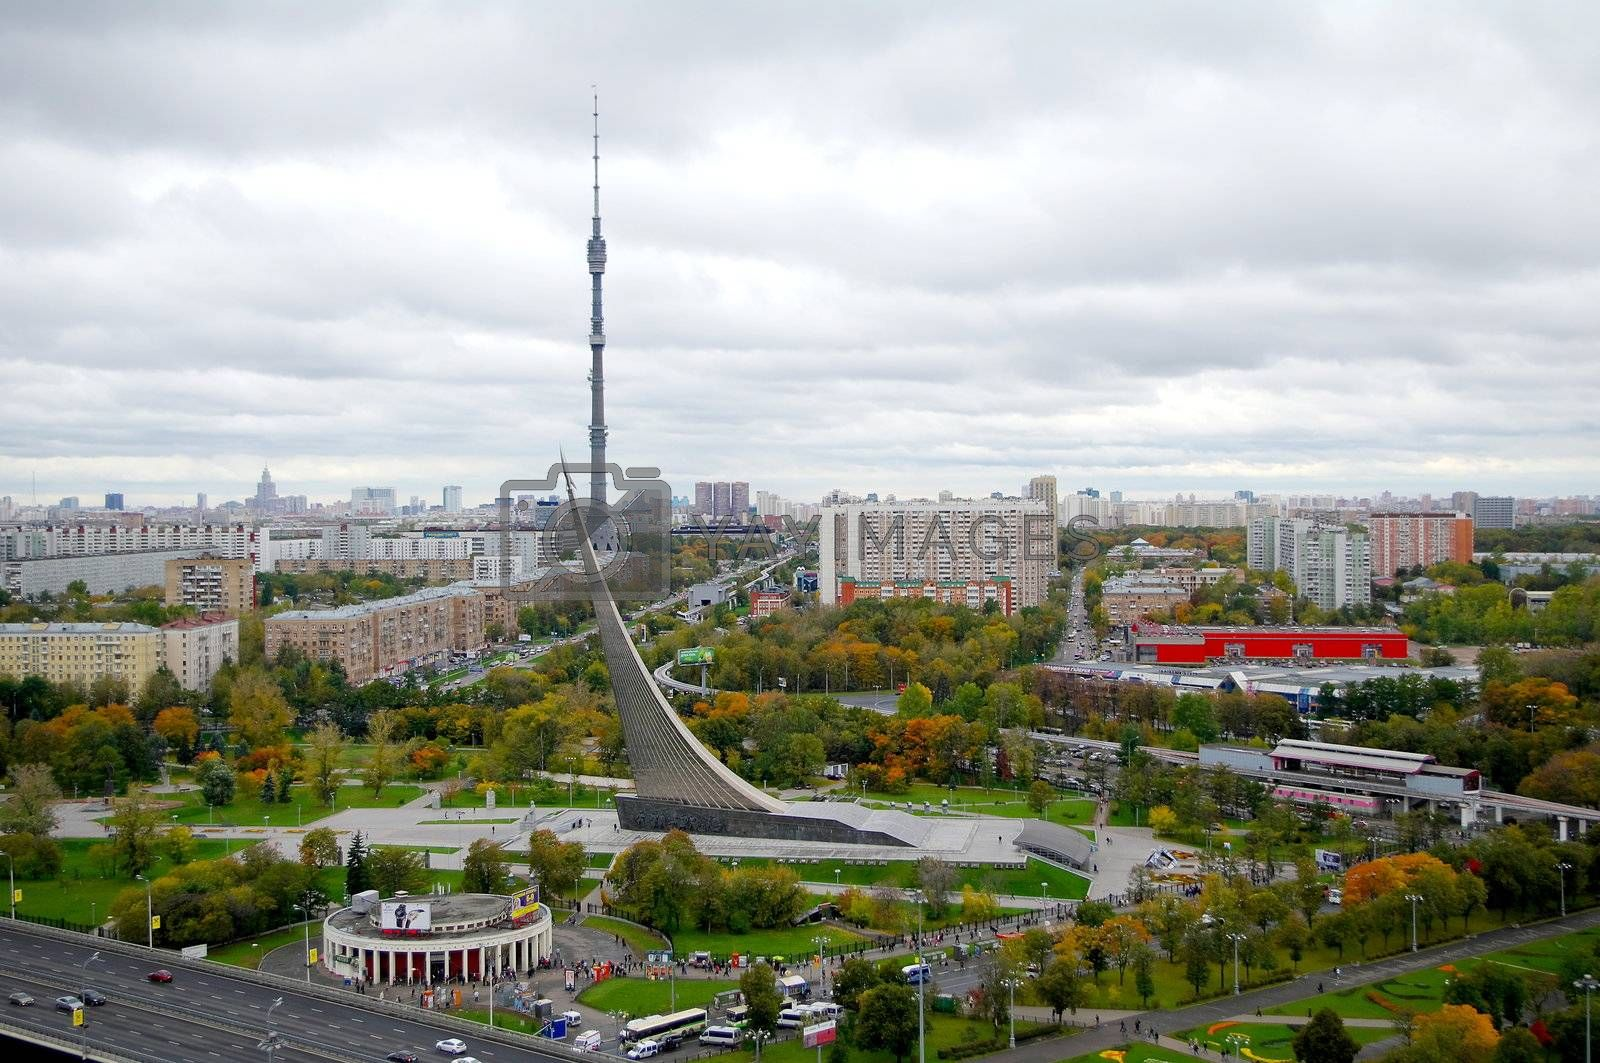 Panorama of central museum of Astronautics and Ostankino tower in Moscow, Russia